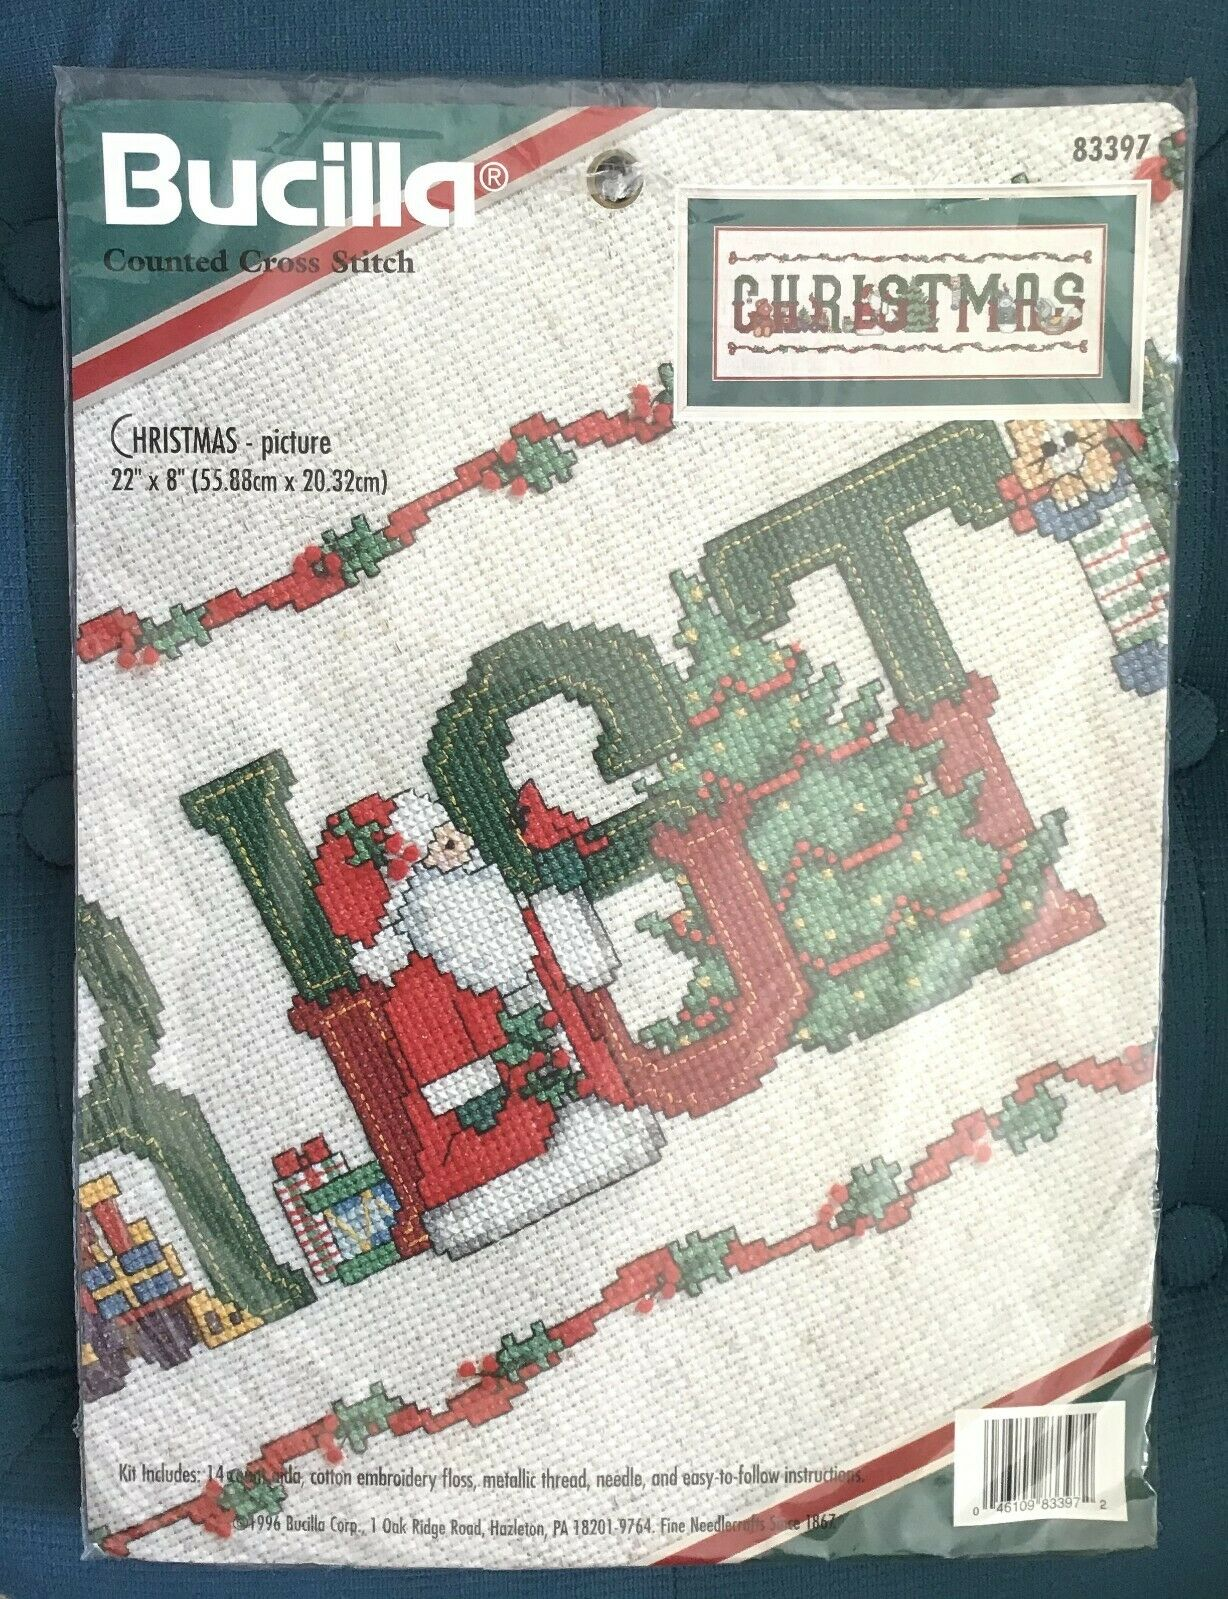 1996 Bucilla Christmas Picture Counted Cross Stitch Kit 22""